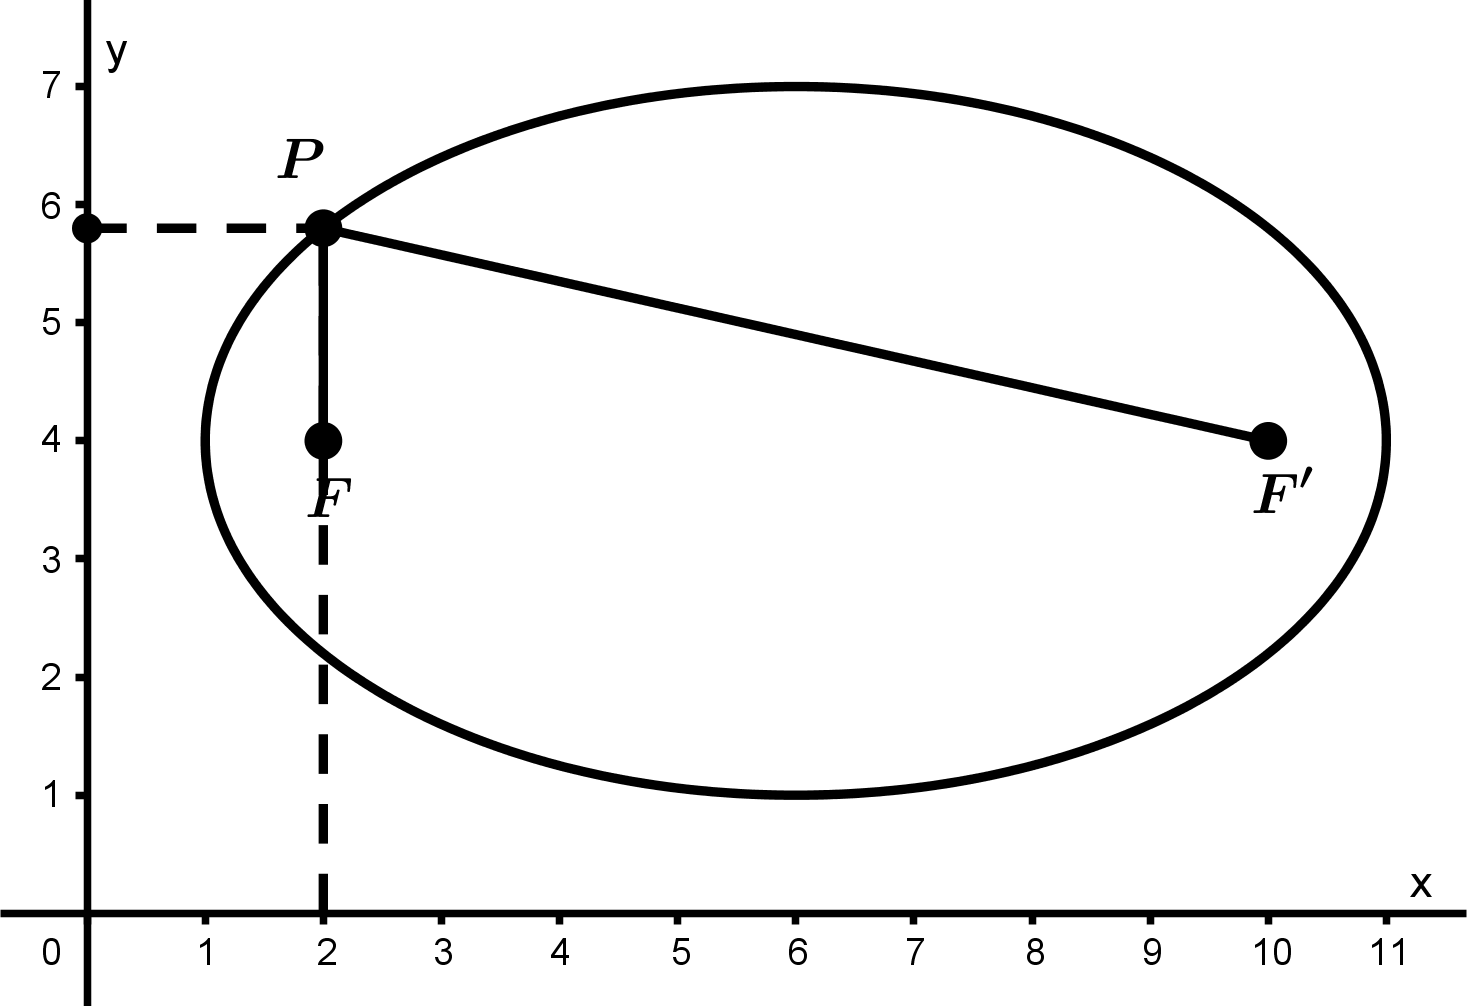 ellipse-point-P-2a